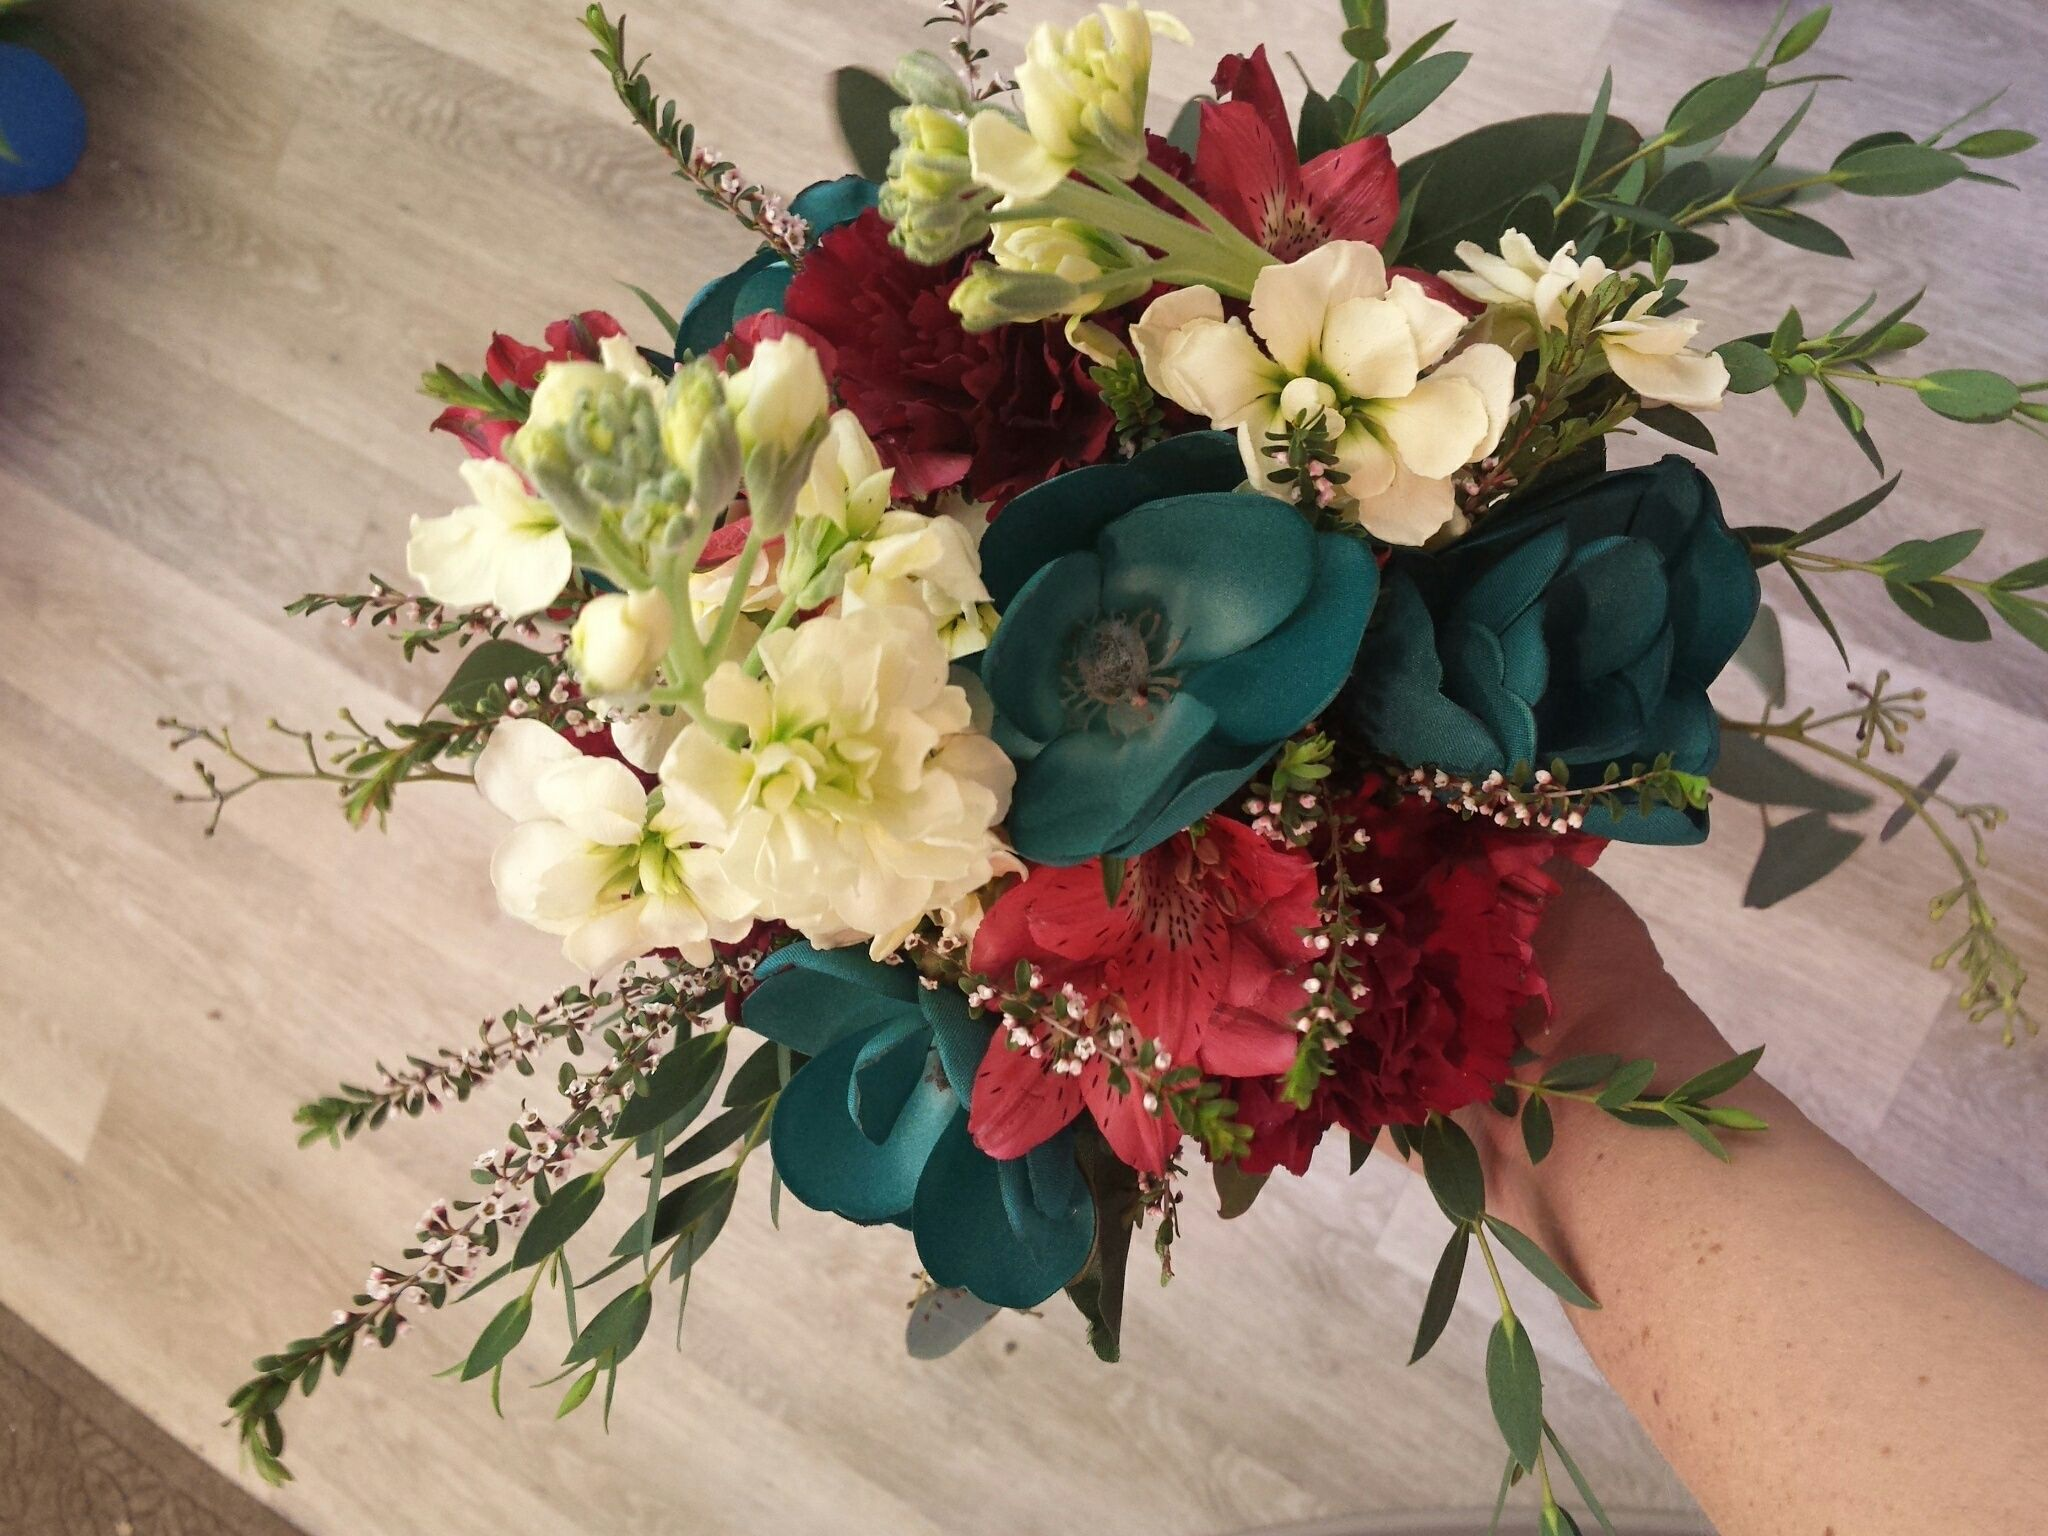 Burgundy And Teal Bouquet Featuring Teal Permanent Flowers Cream Stock Burgundy Alstromeria And Sterl Teal Wedding Flowers Prom Flowers Bouquet Teal Bouquet